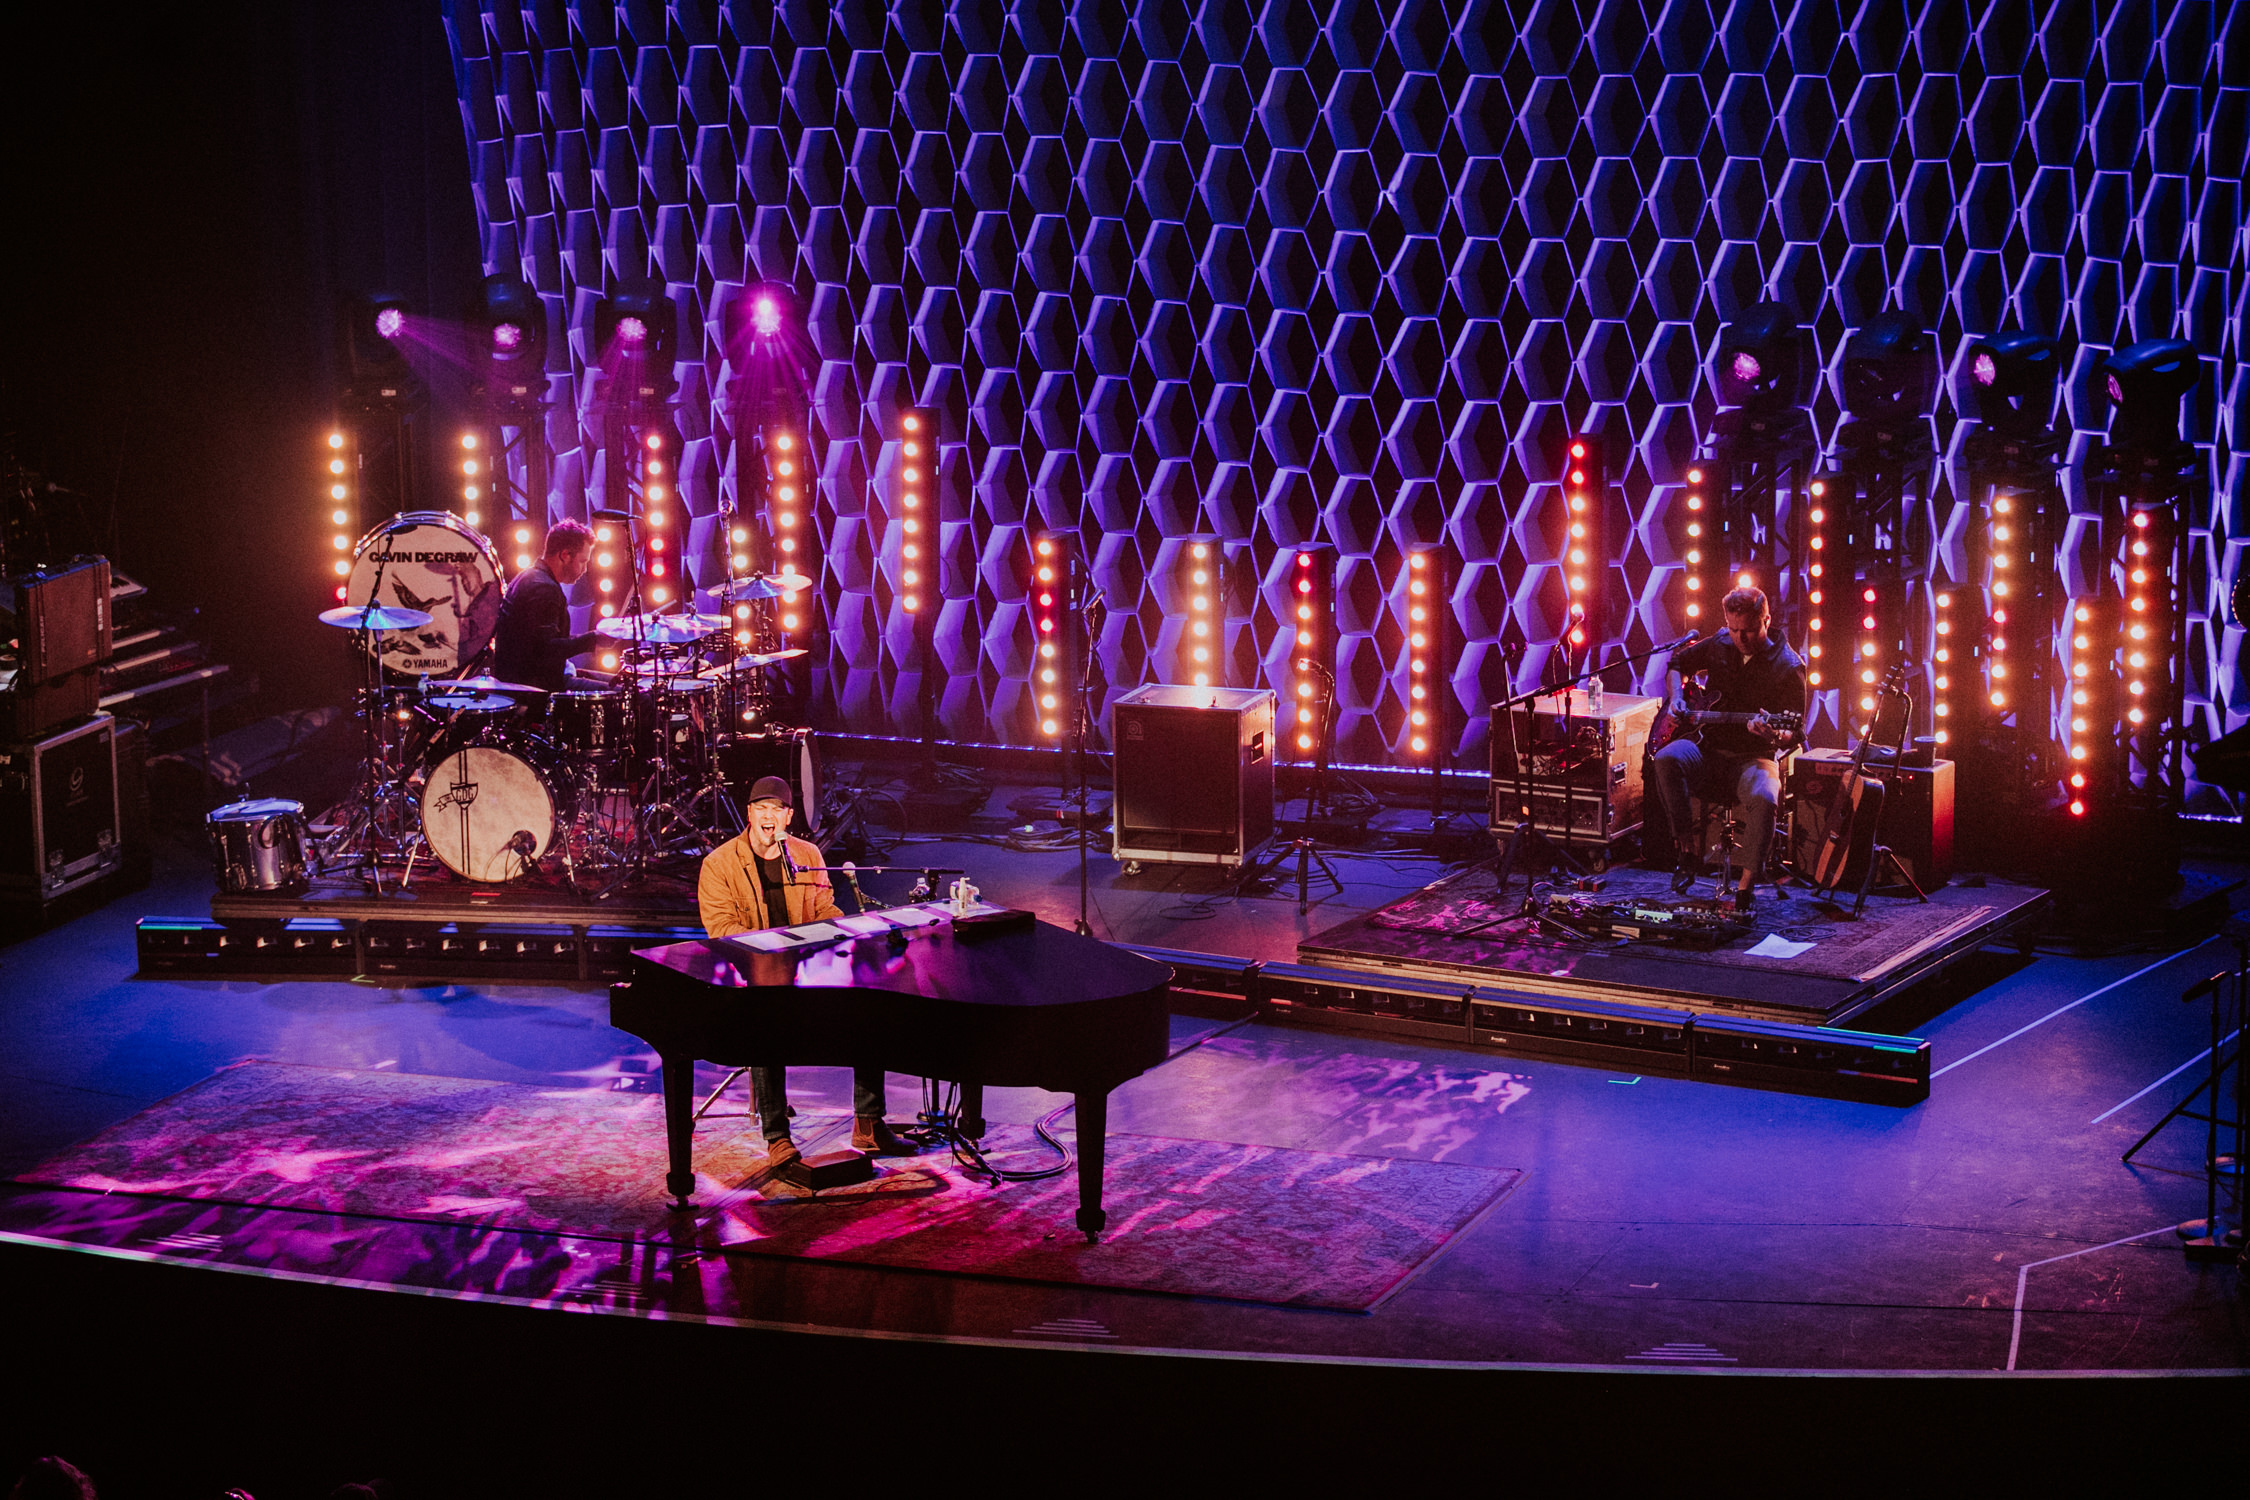 gavin-degraw-tour-production-lights-wide-stage-AnnaLeeMedia